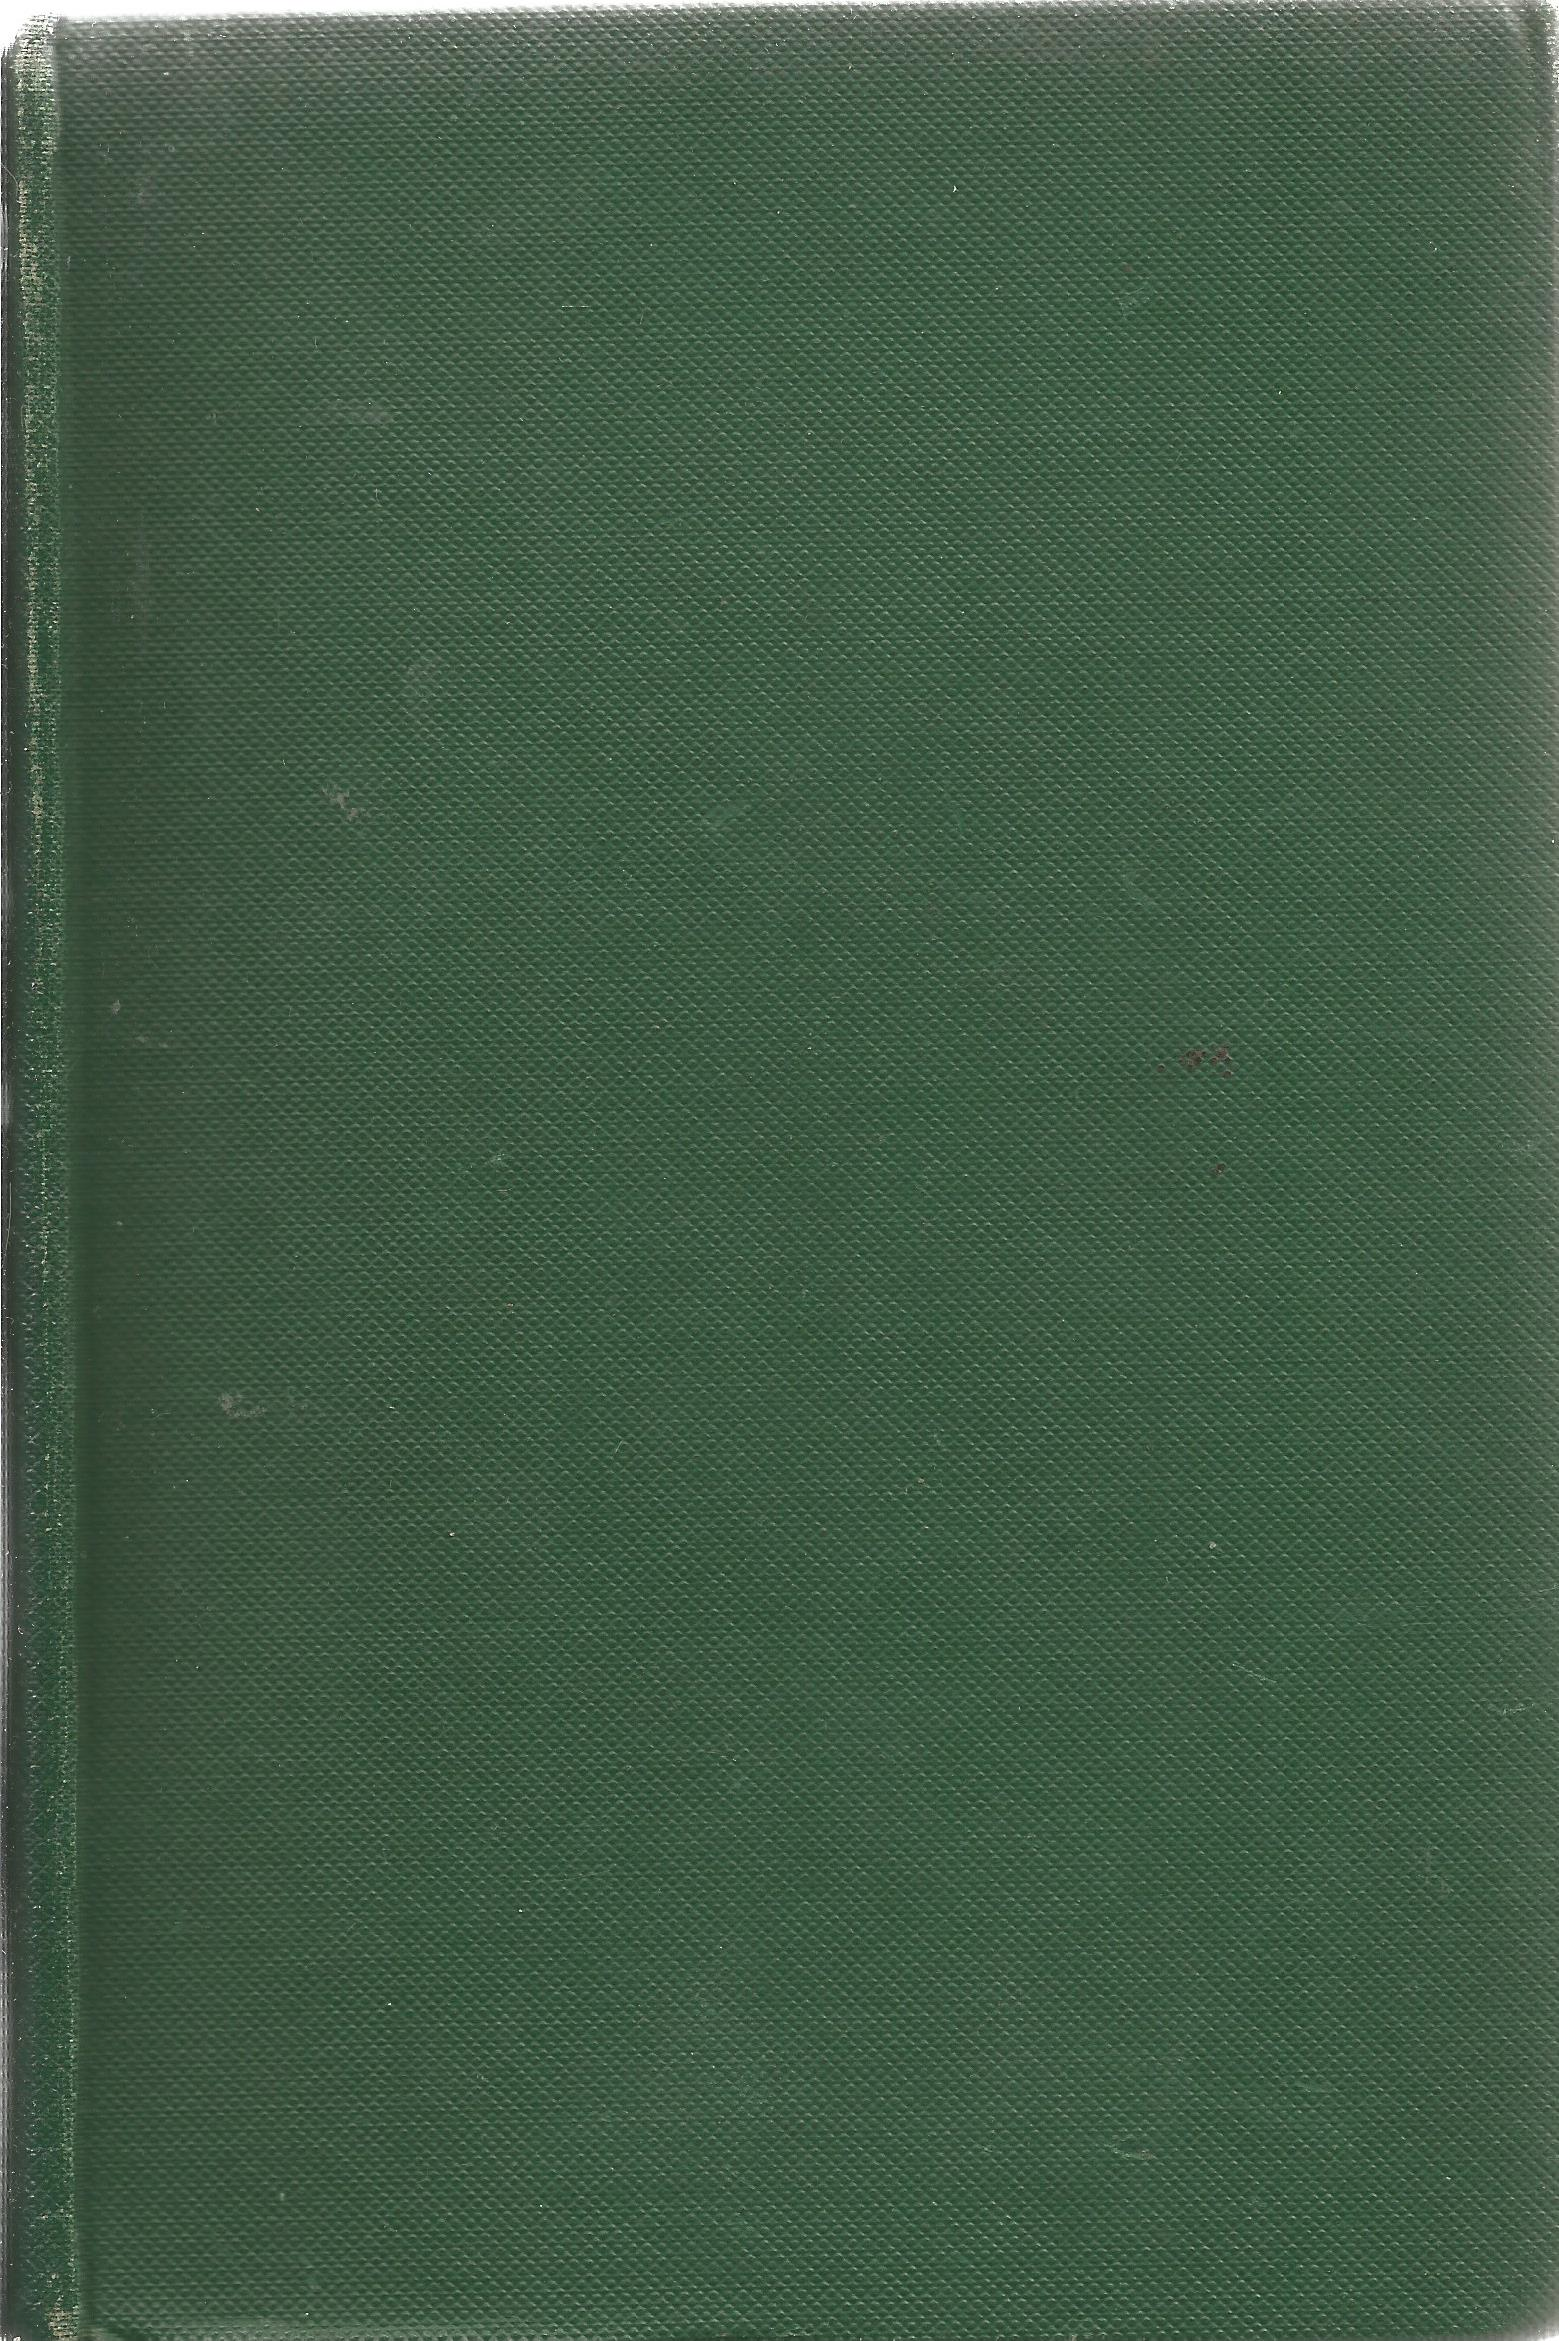 Hardback Book Collected Poems of Thomas Hardy with a Portrait 1919 First Edition published by